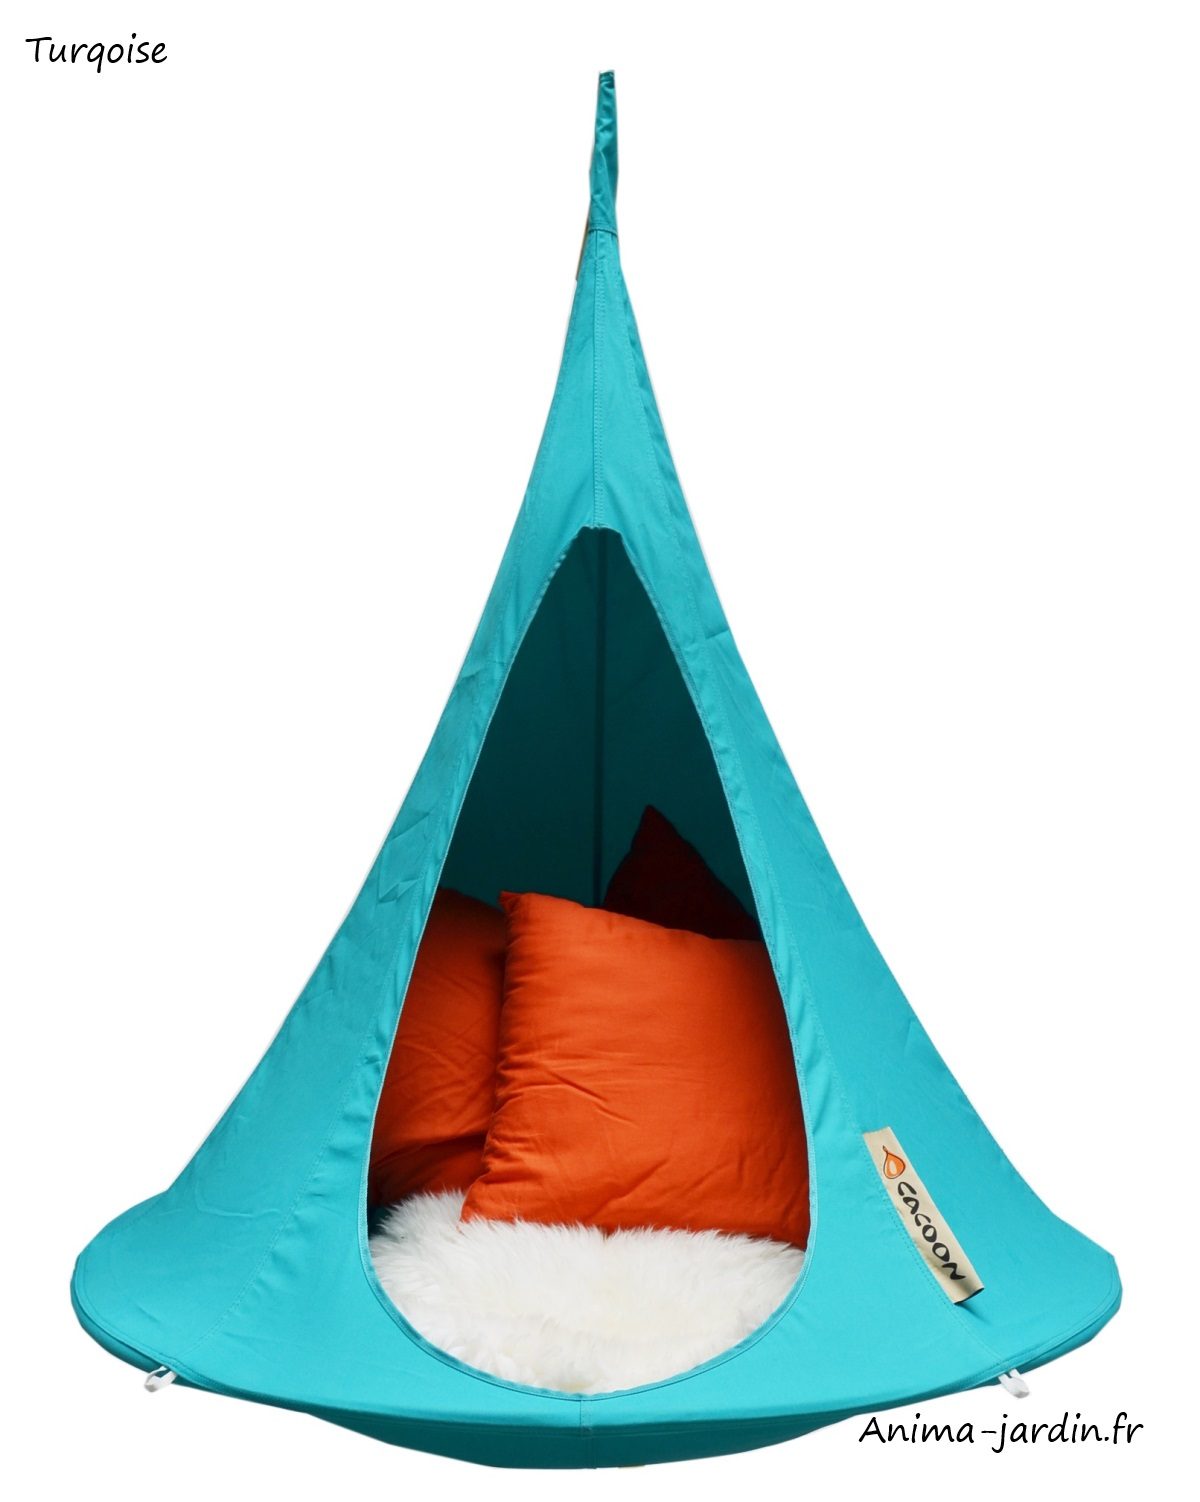 Cacoon Turquoise